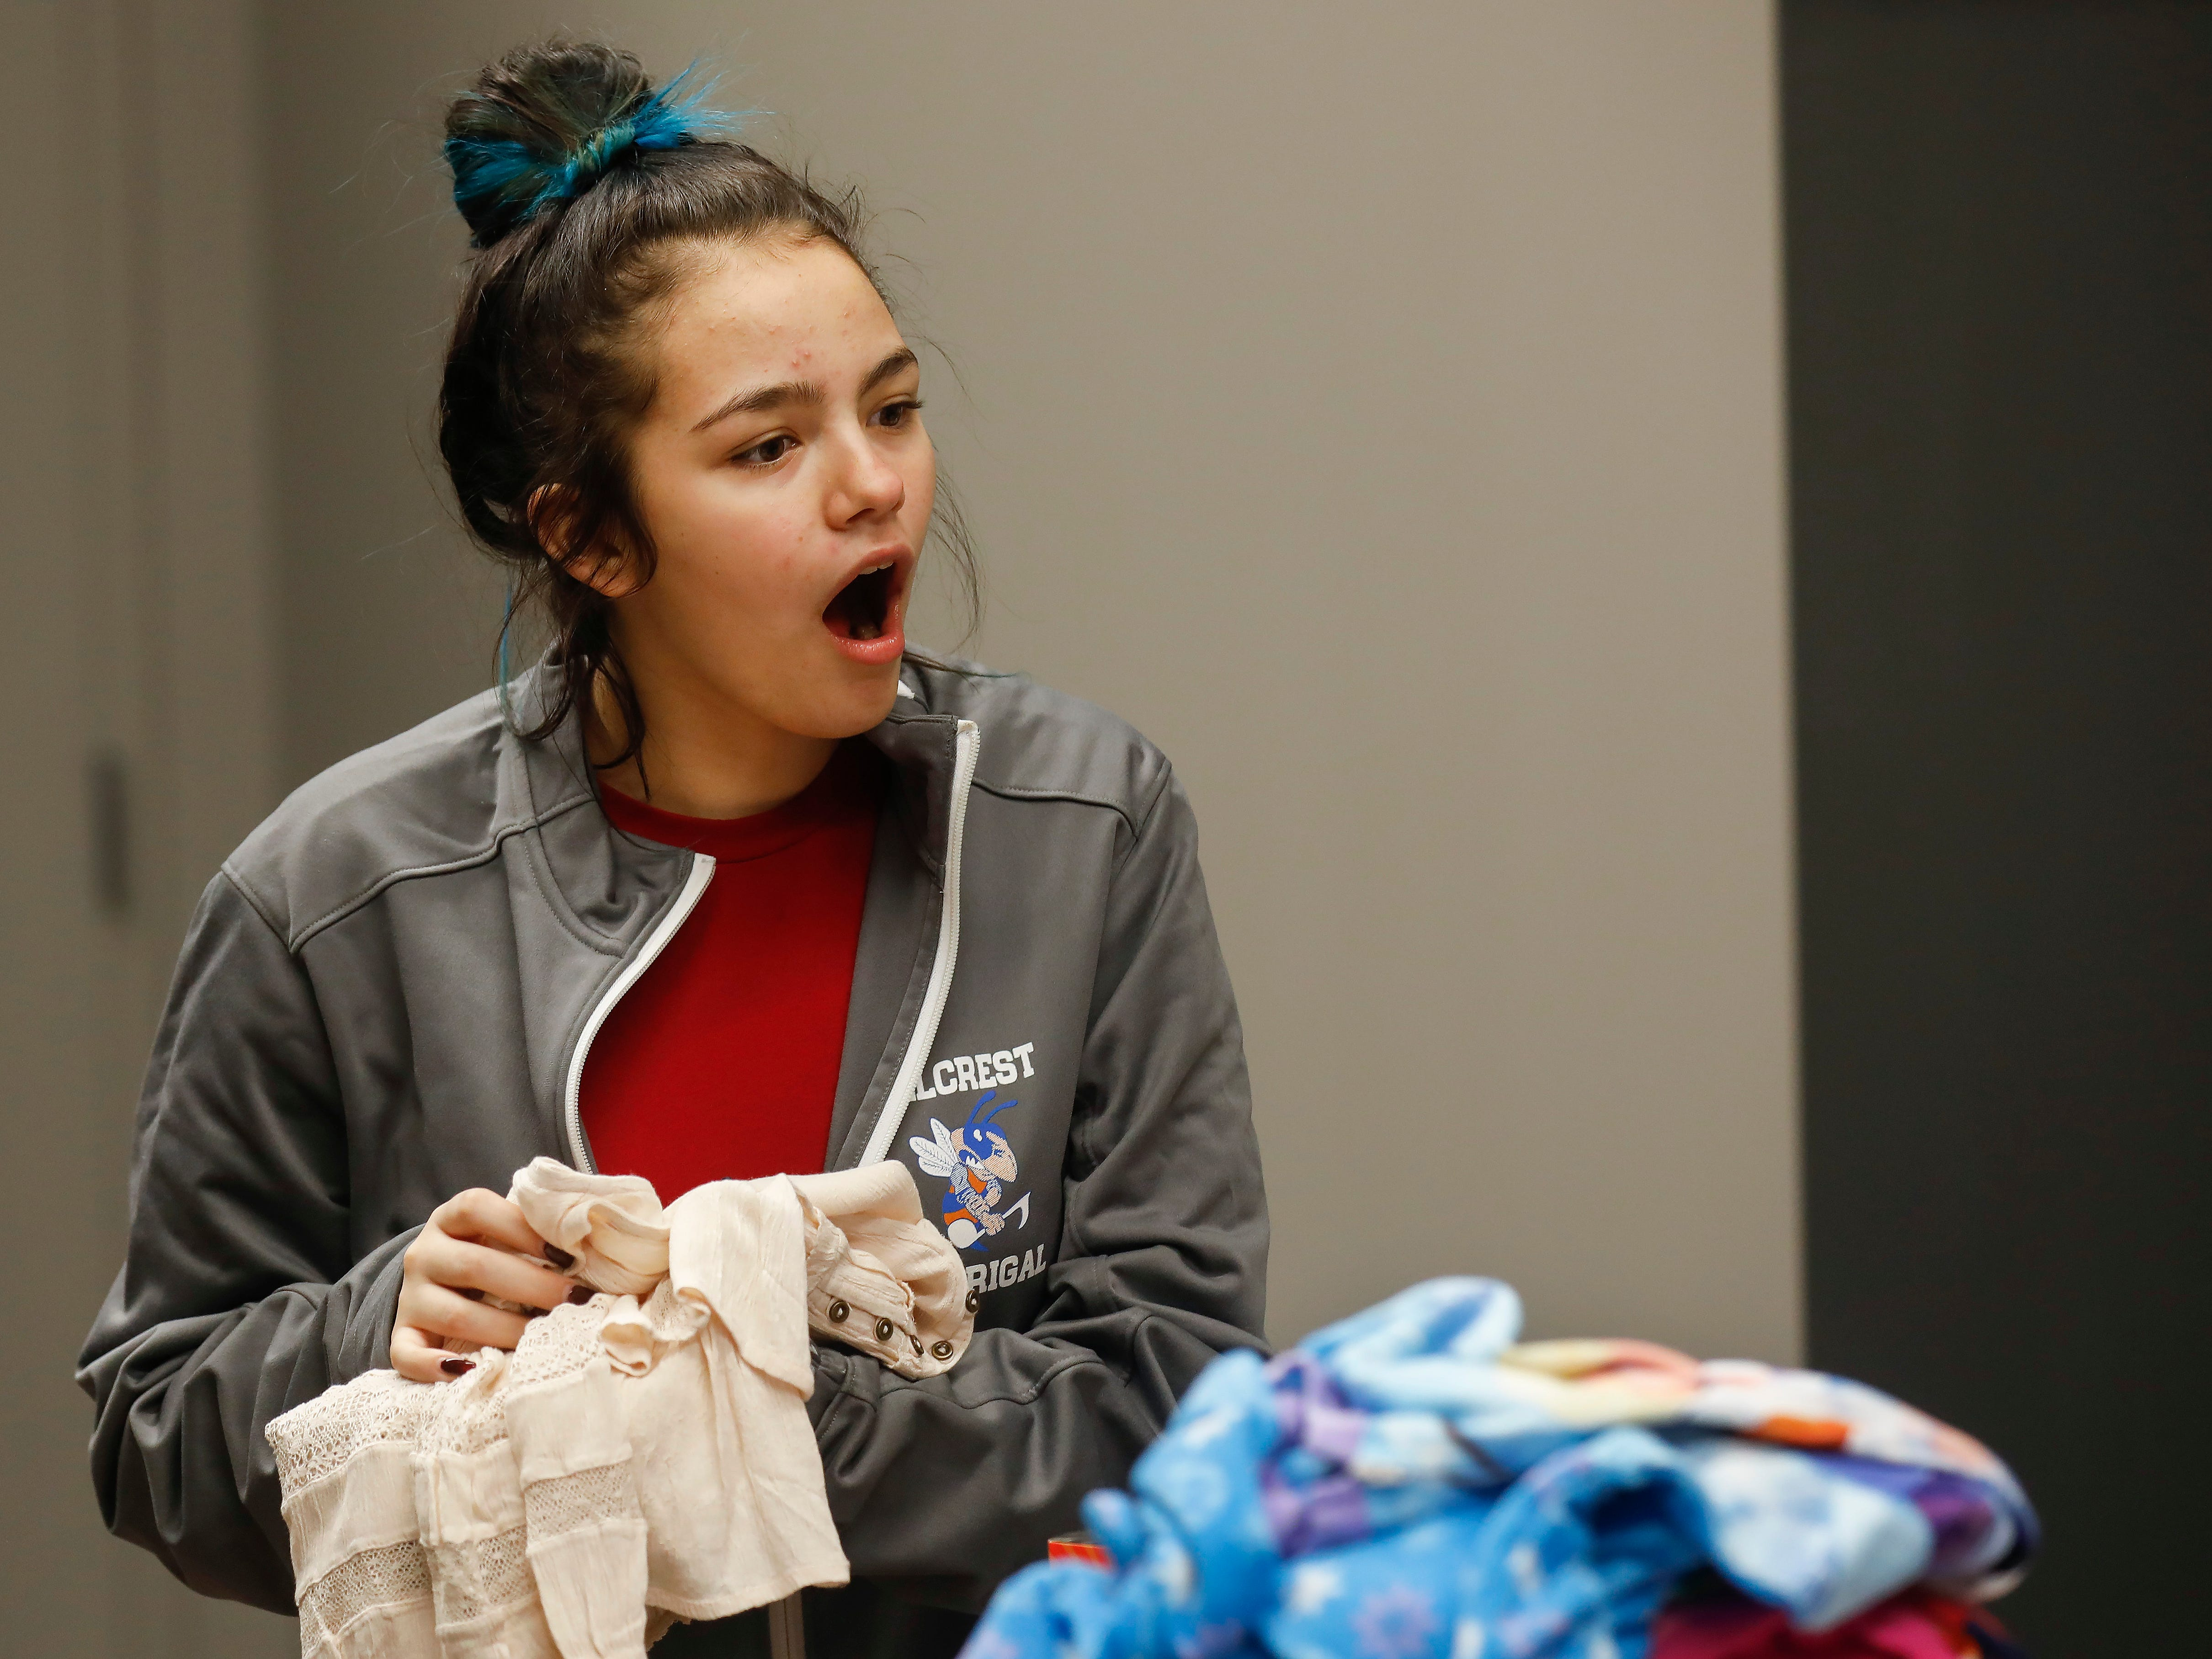 Emileigh Sahagun, center, reacts as she looks at gifts that were given to her and her sisters by employees of J.D. Byrider on Wednesday, Dec. 19, 2018. The Sahaguns' grandmother, Barbara Foster, was killed during a road rage incident on Nov. 20.